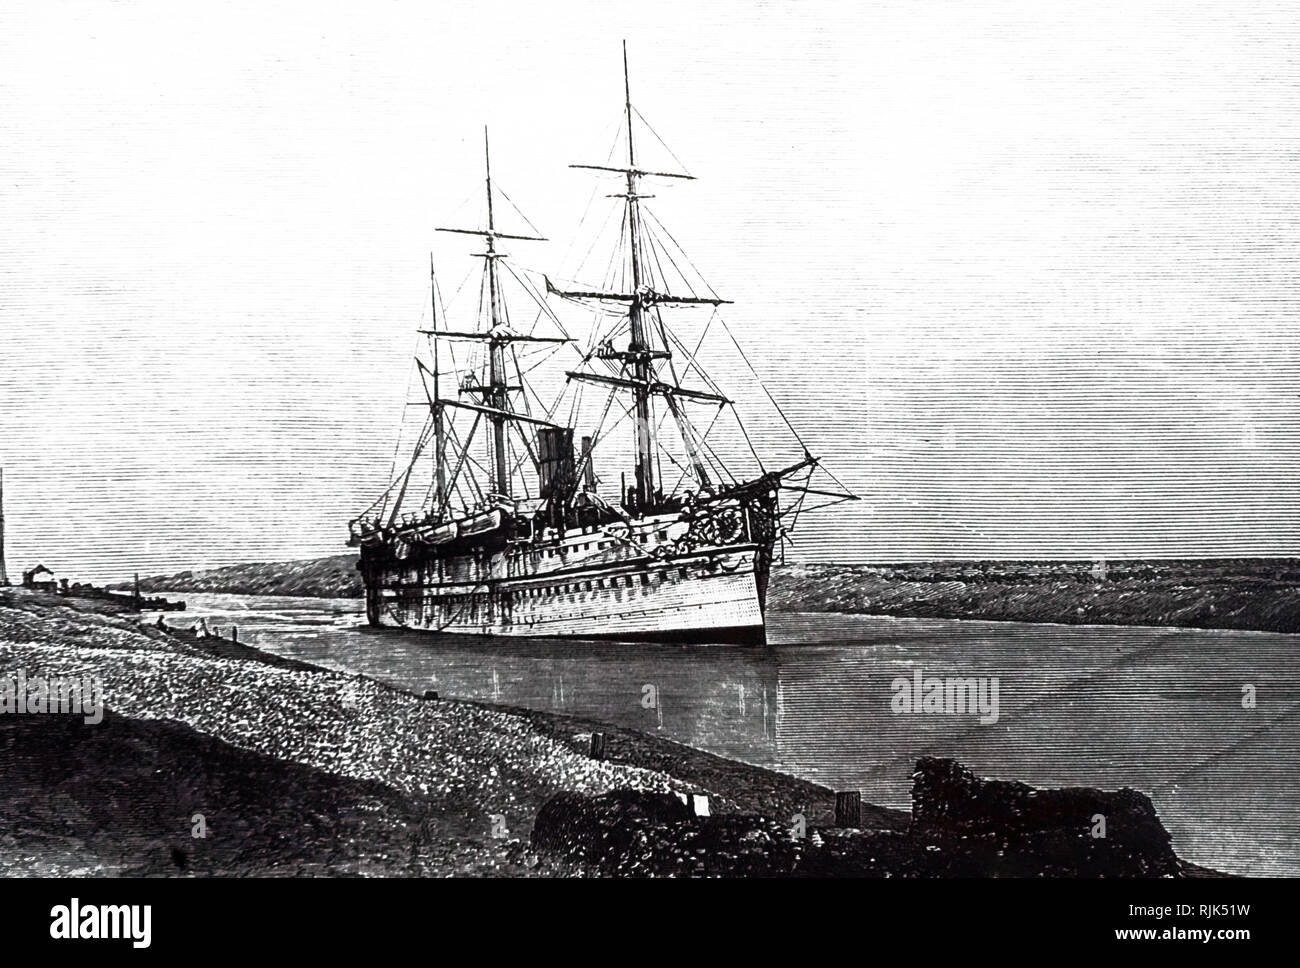 An engraving depicting a ship passing through the Suez Canal, Egypt. Dated 19th century - Stock Image